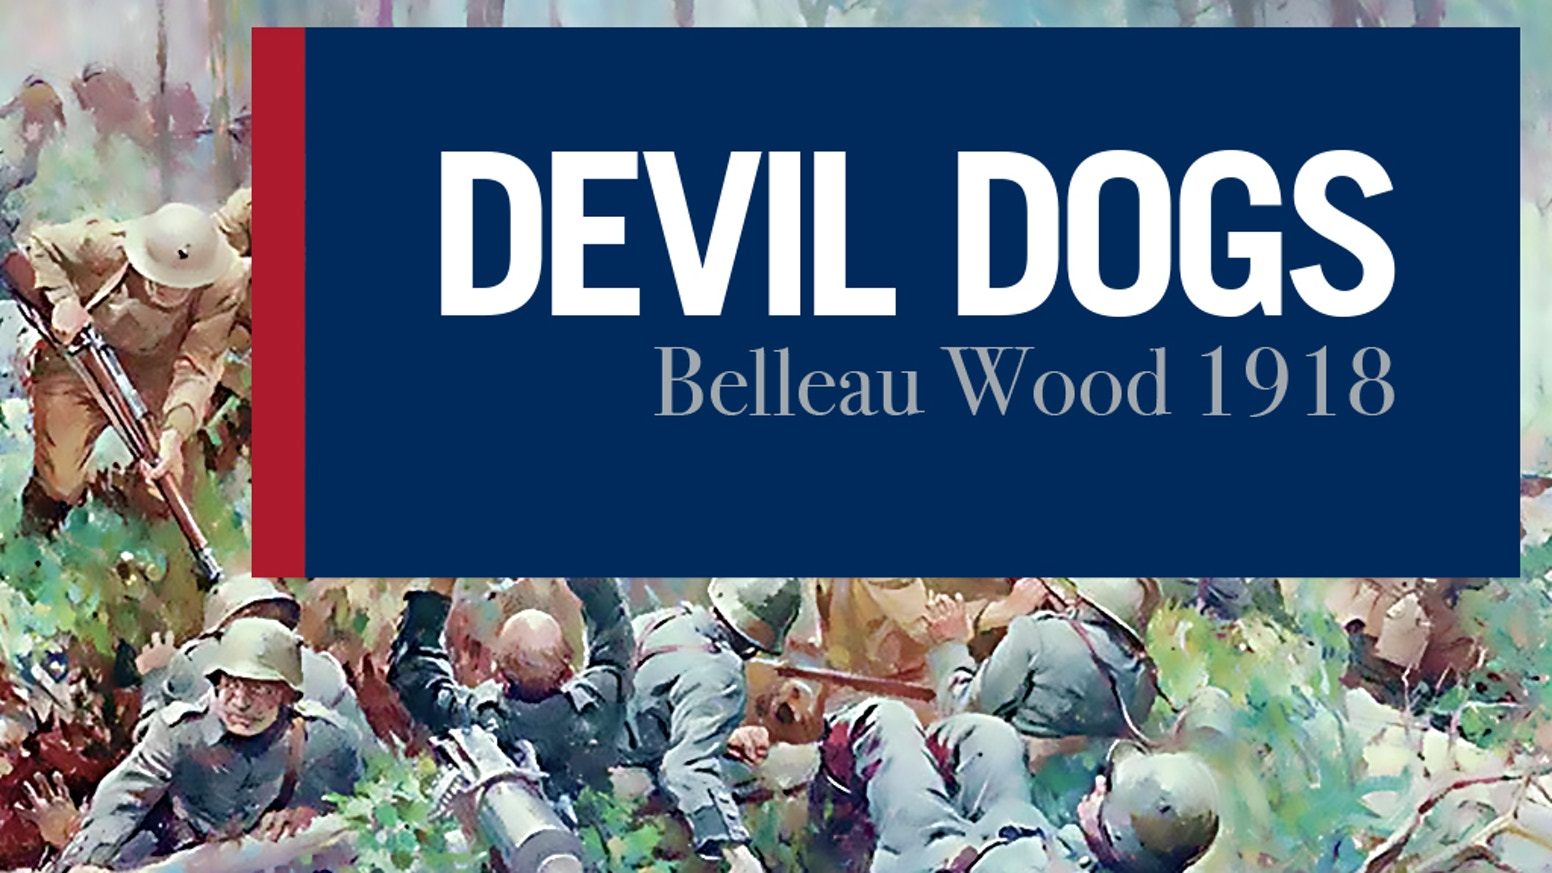 A hex and counter war game on the US Marine's major fight in World War I at Belleau Wood.  Playable by 2 in under 3 hours.  No dice!